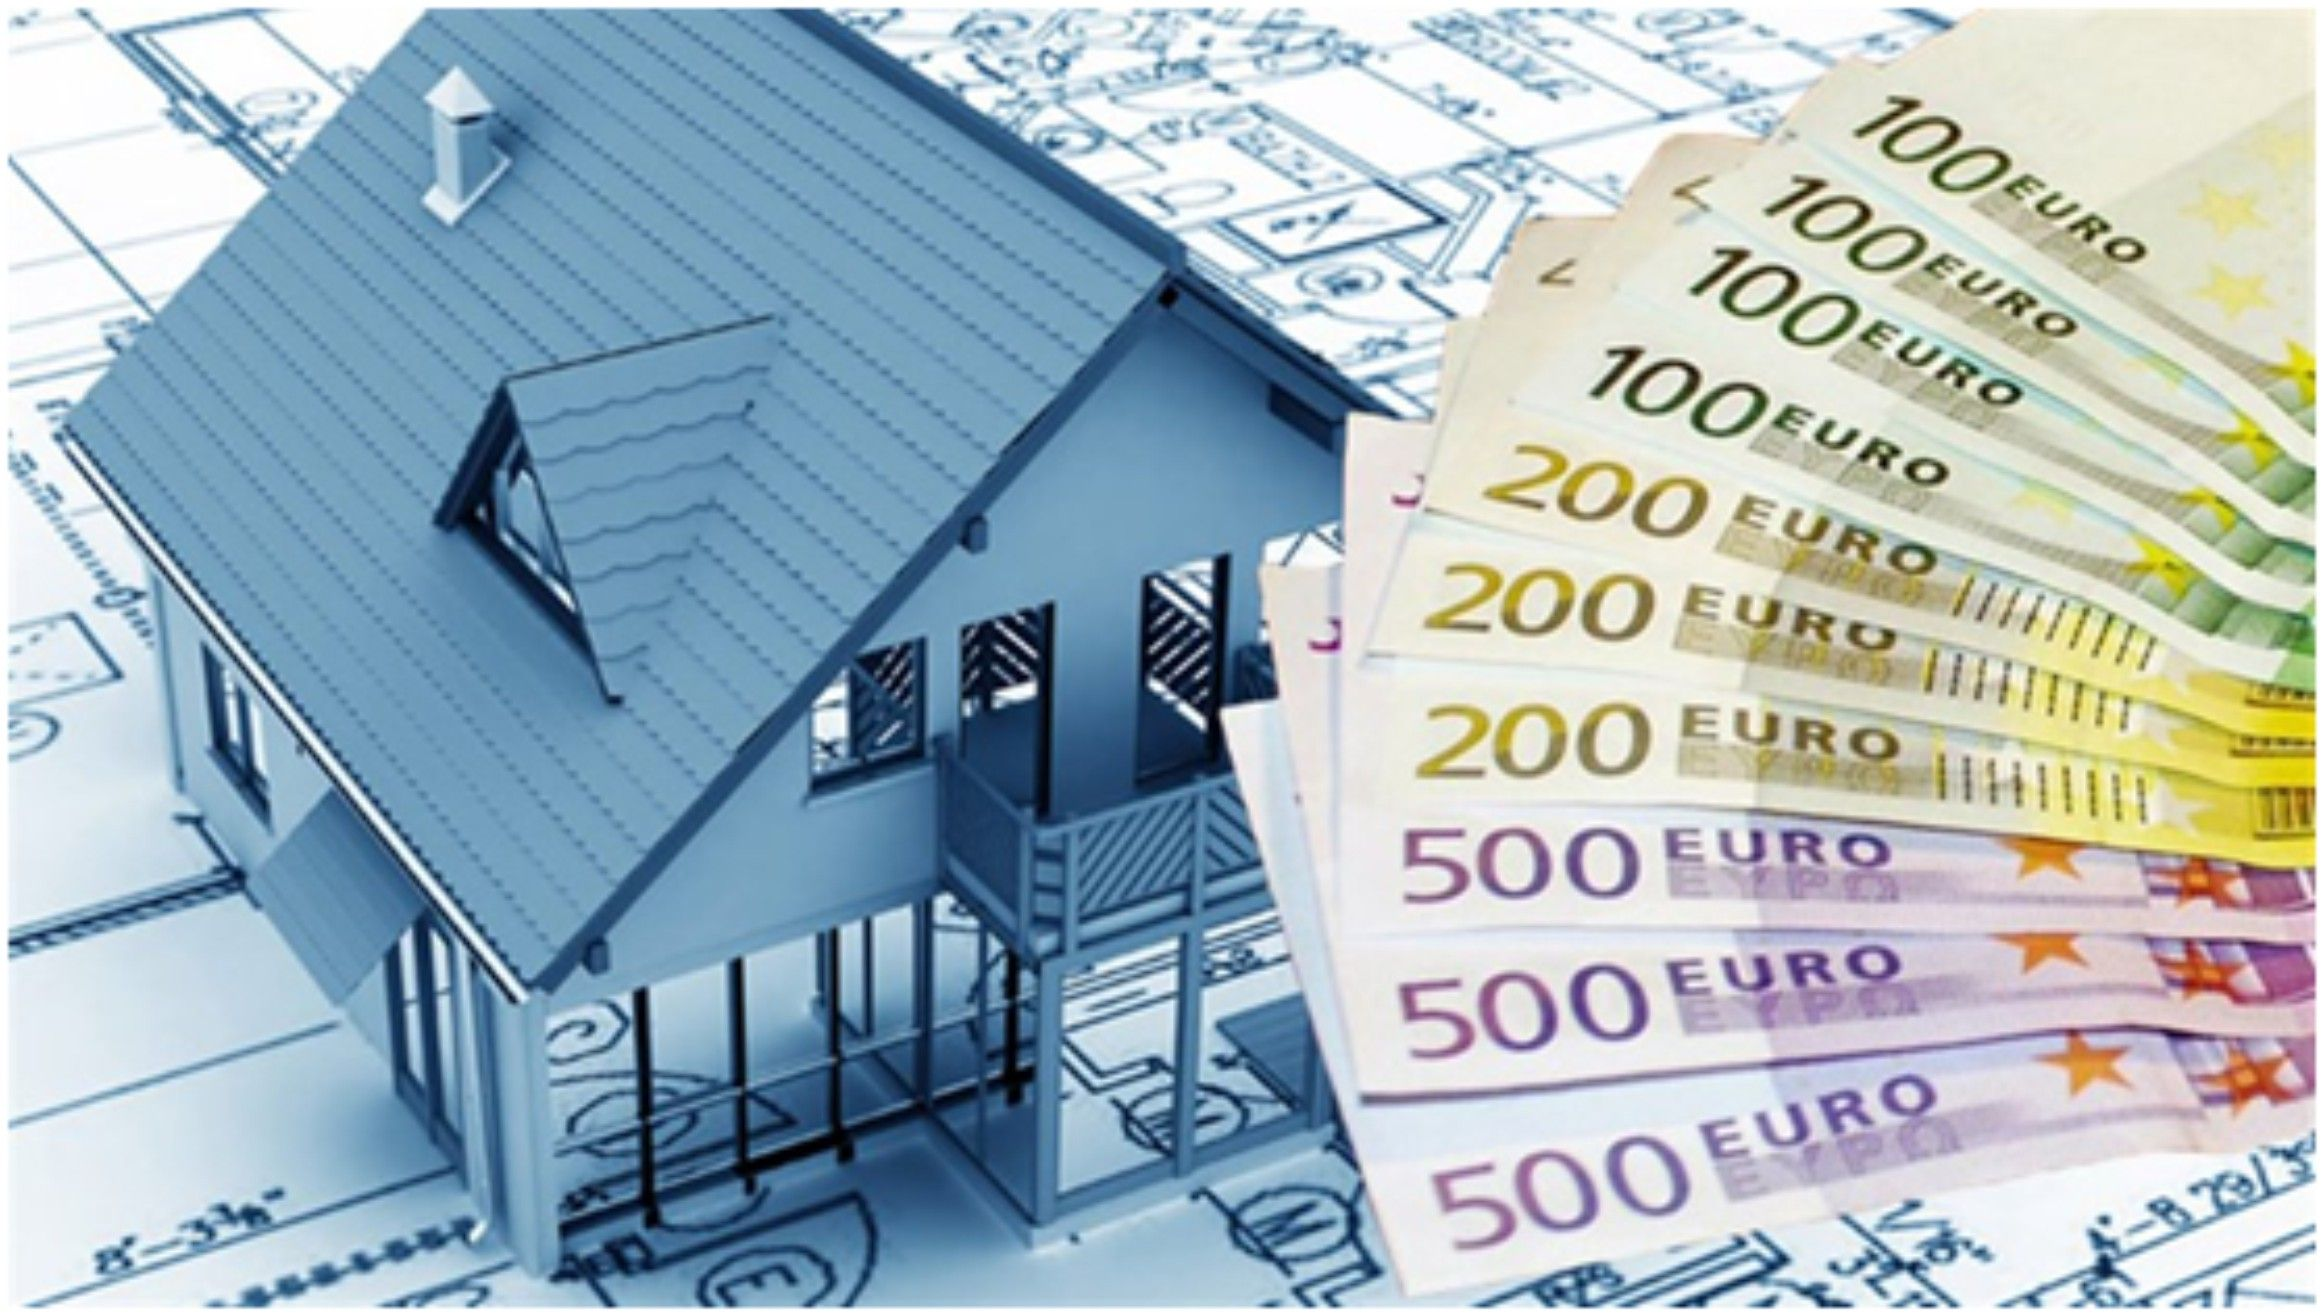 New fair values for real estate in Greece, down only by 20% at the most